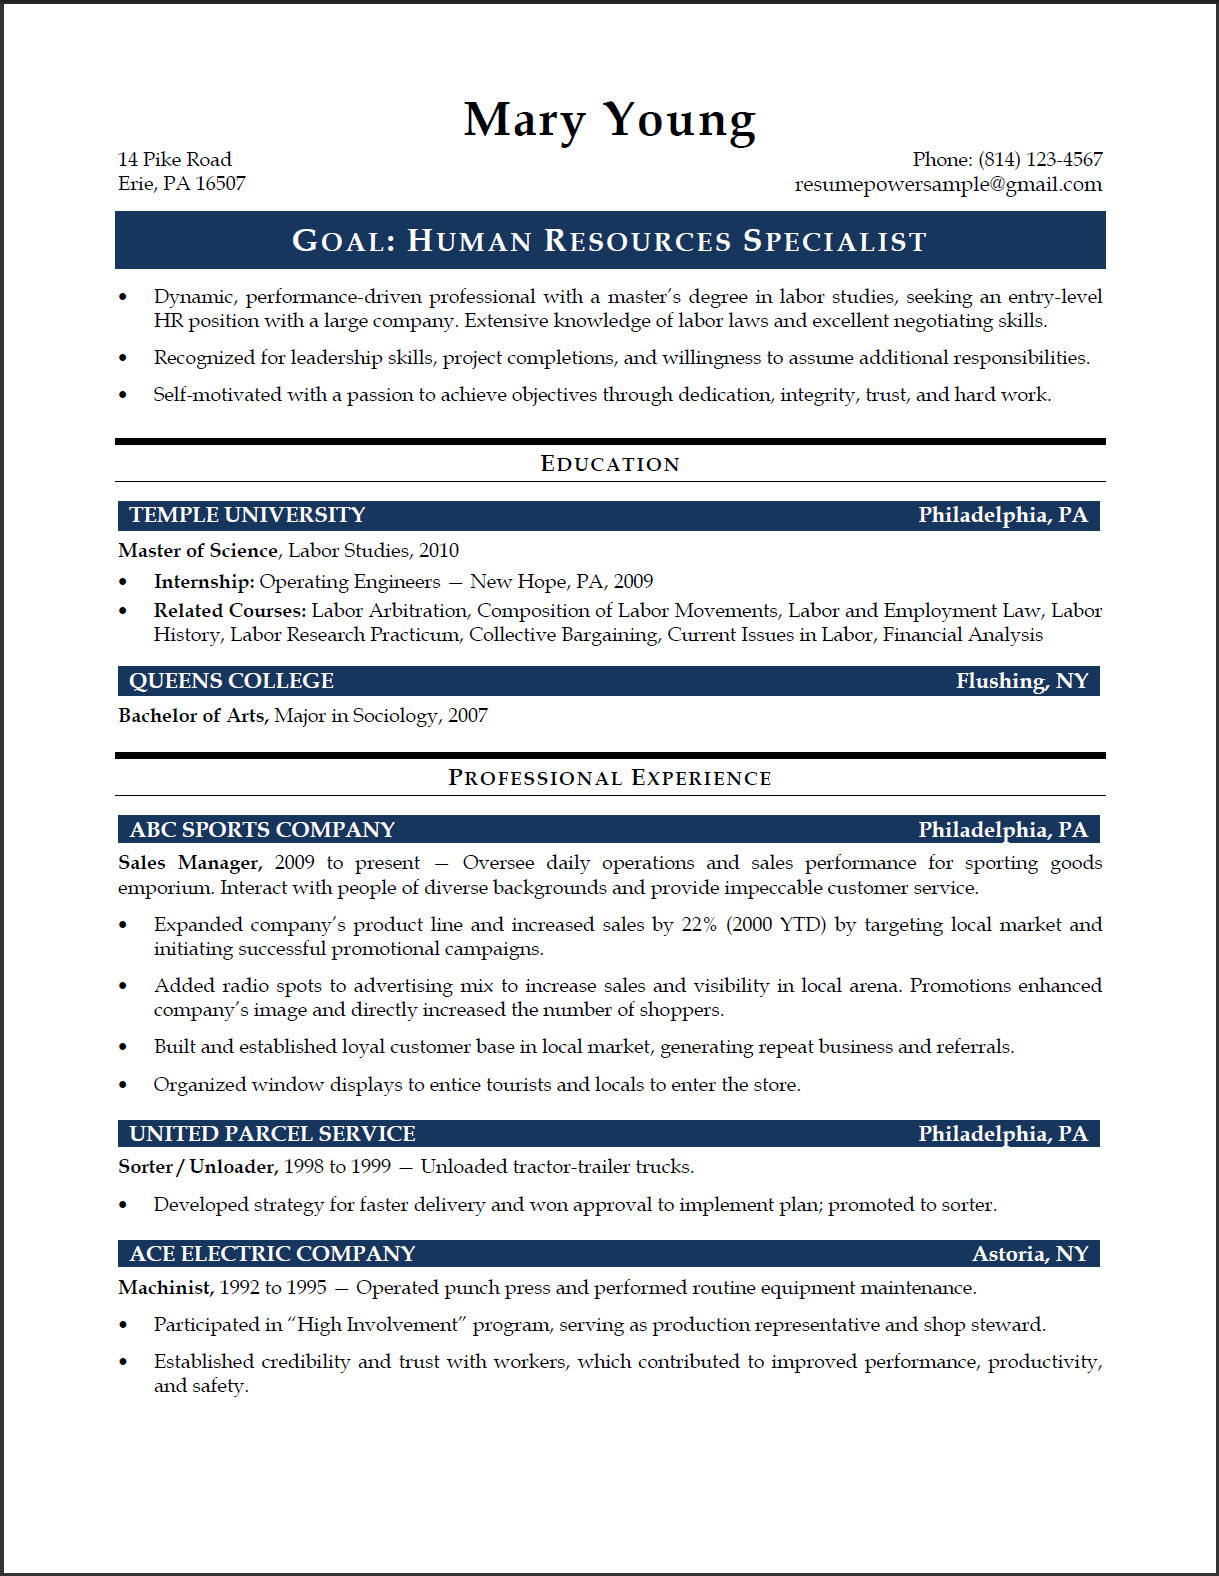 Hr Resume Template Resume Objective Hr Assistant Professional Resume